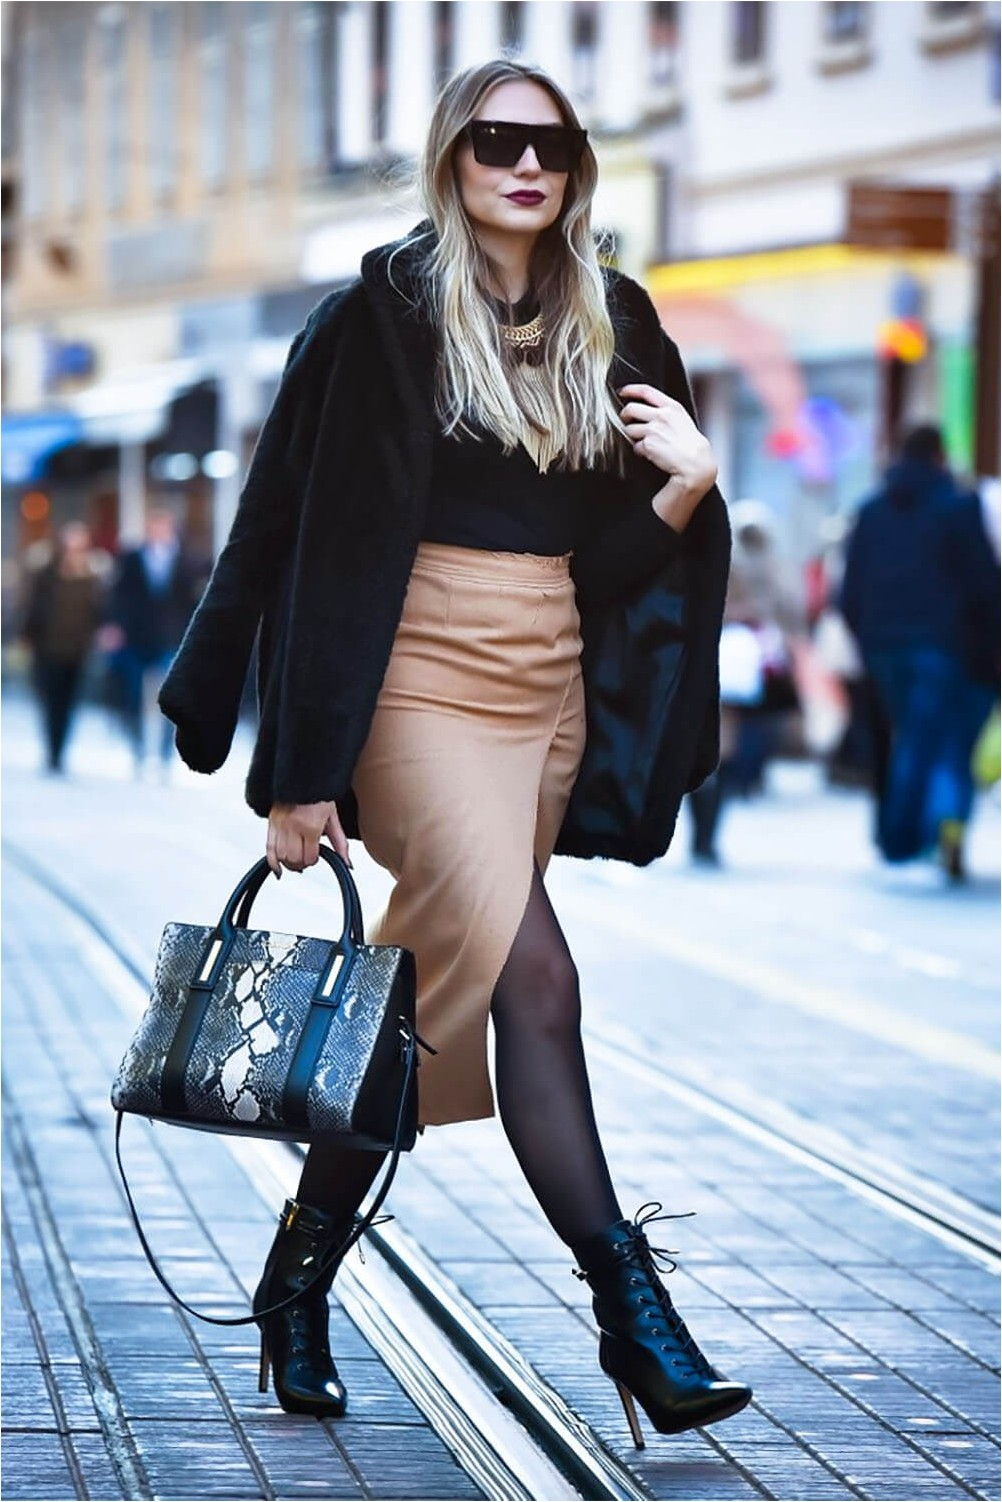 Pencil skirt with ankle boots